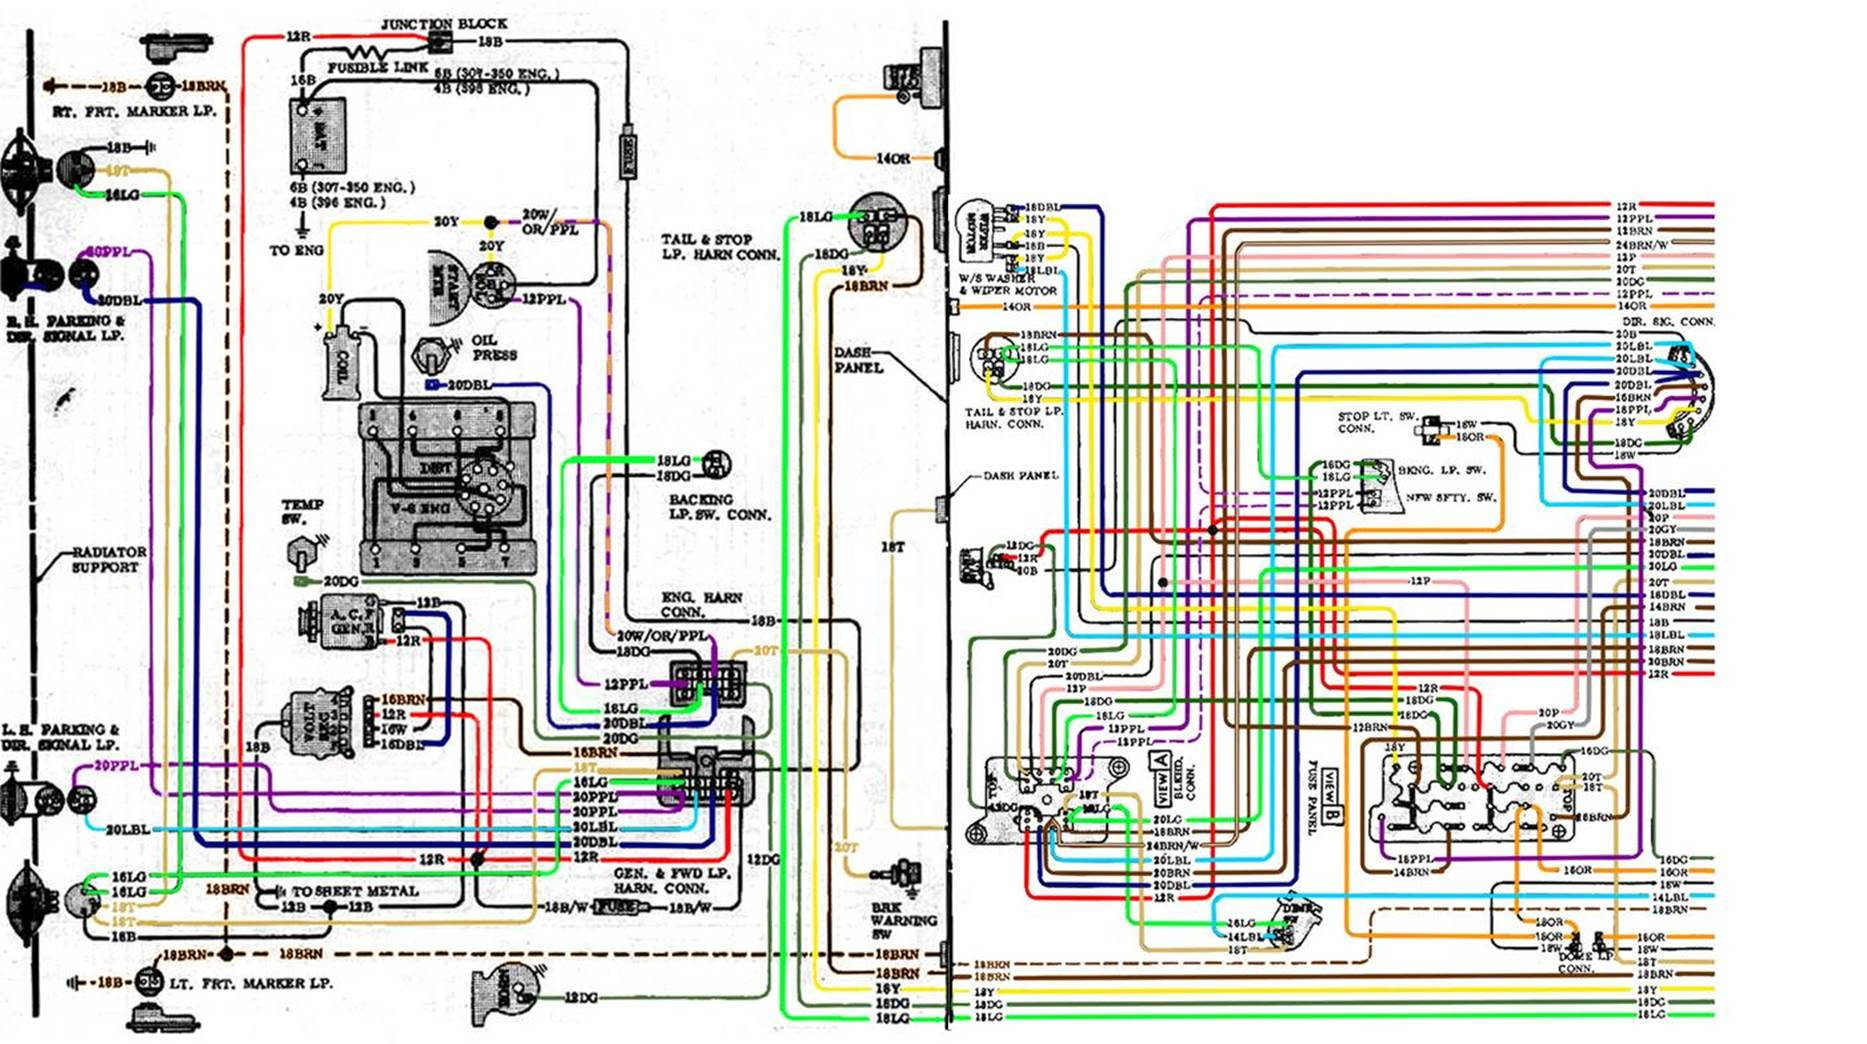 image002 1971 chevelle wiring diagram 1971 chevelle engine bay wiring 1972 chevelle wiring harness at gsmx.co